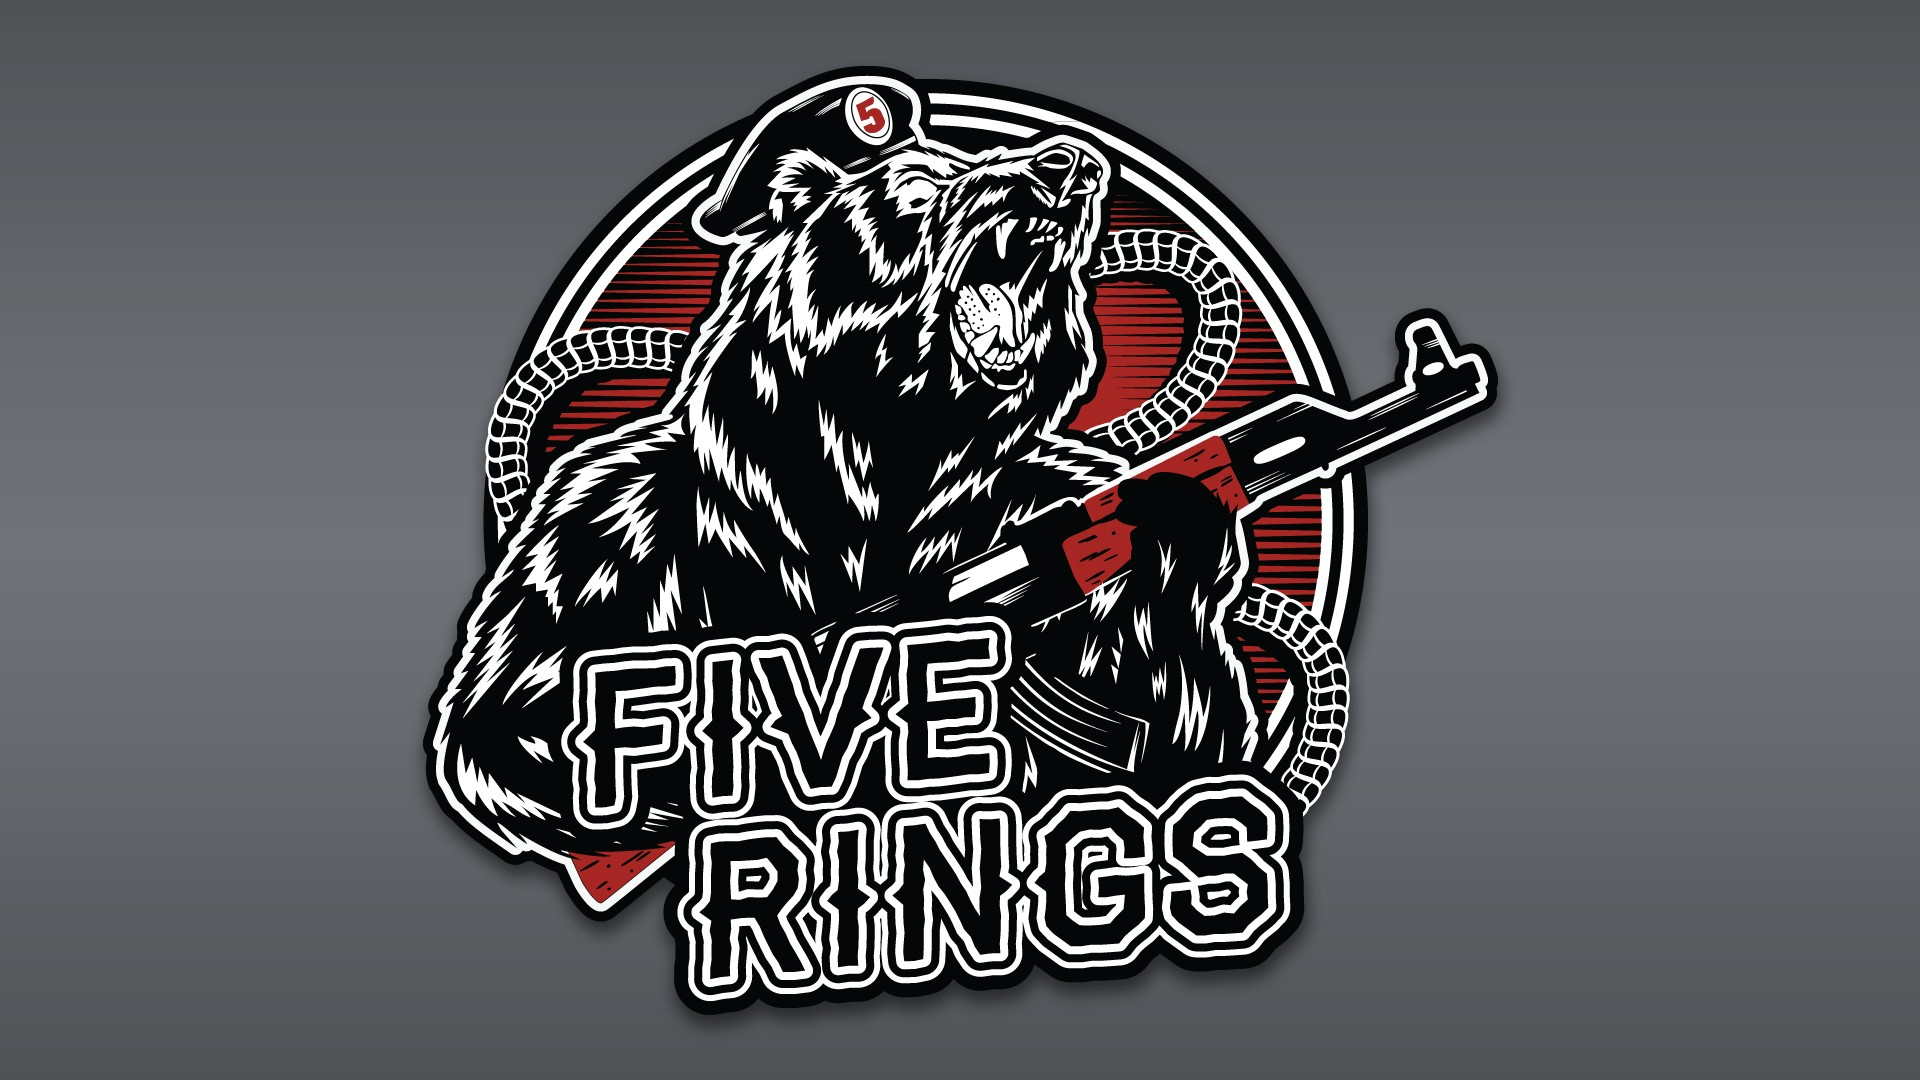 Russian Bear Five Rings Armory